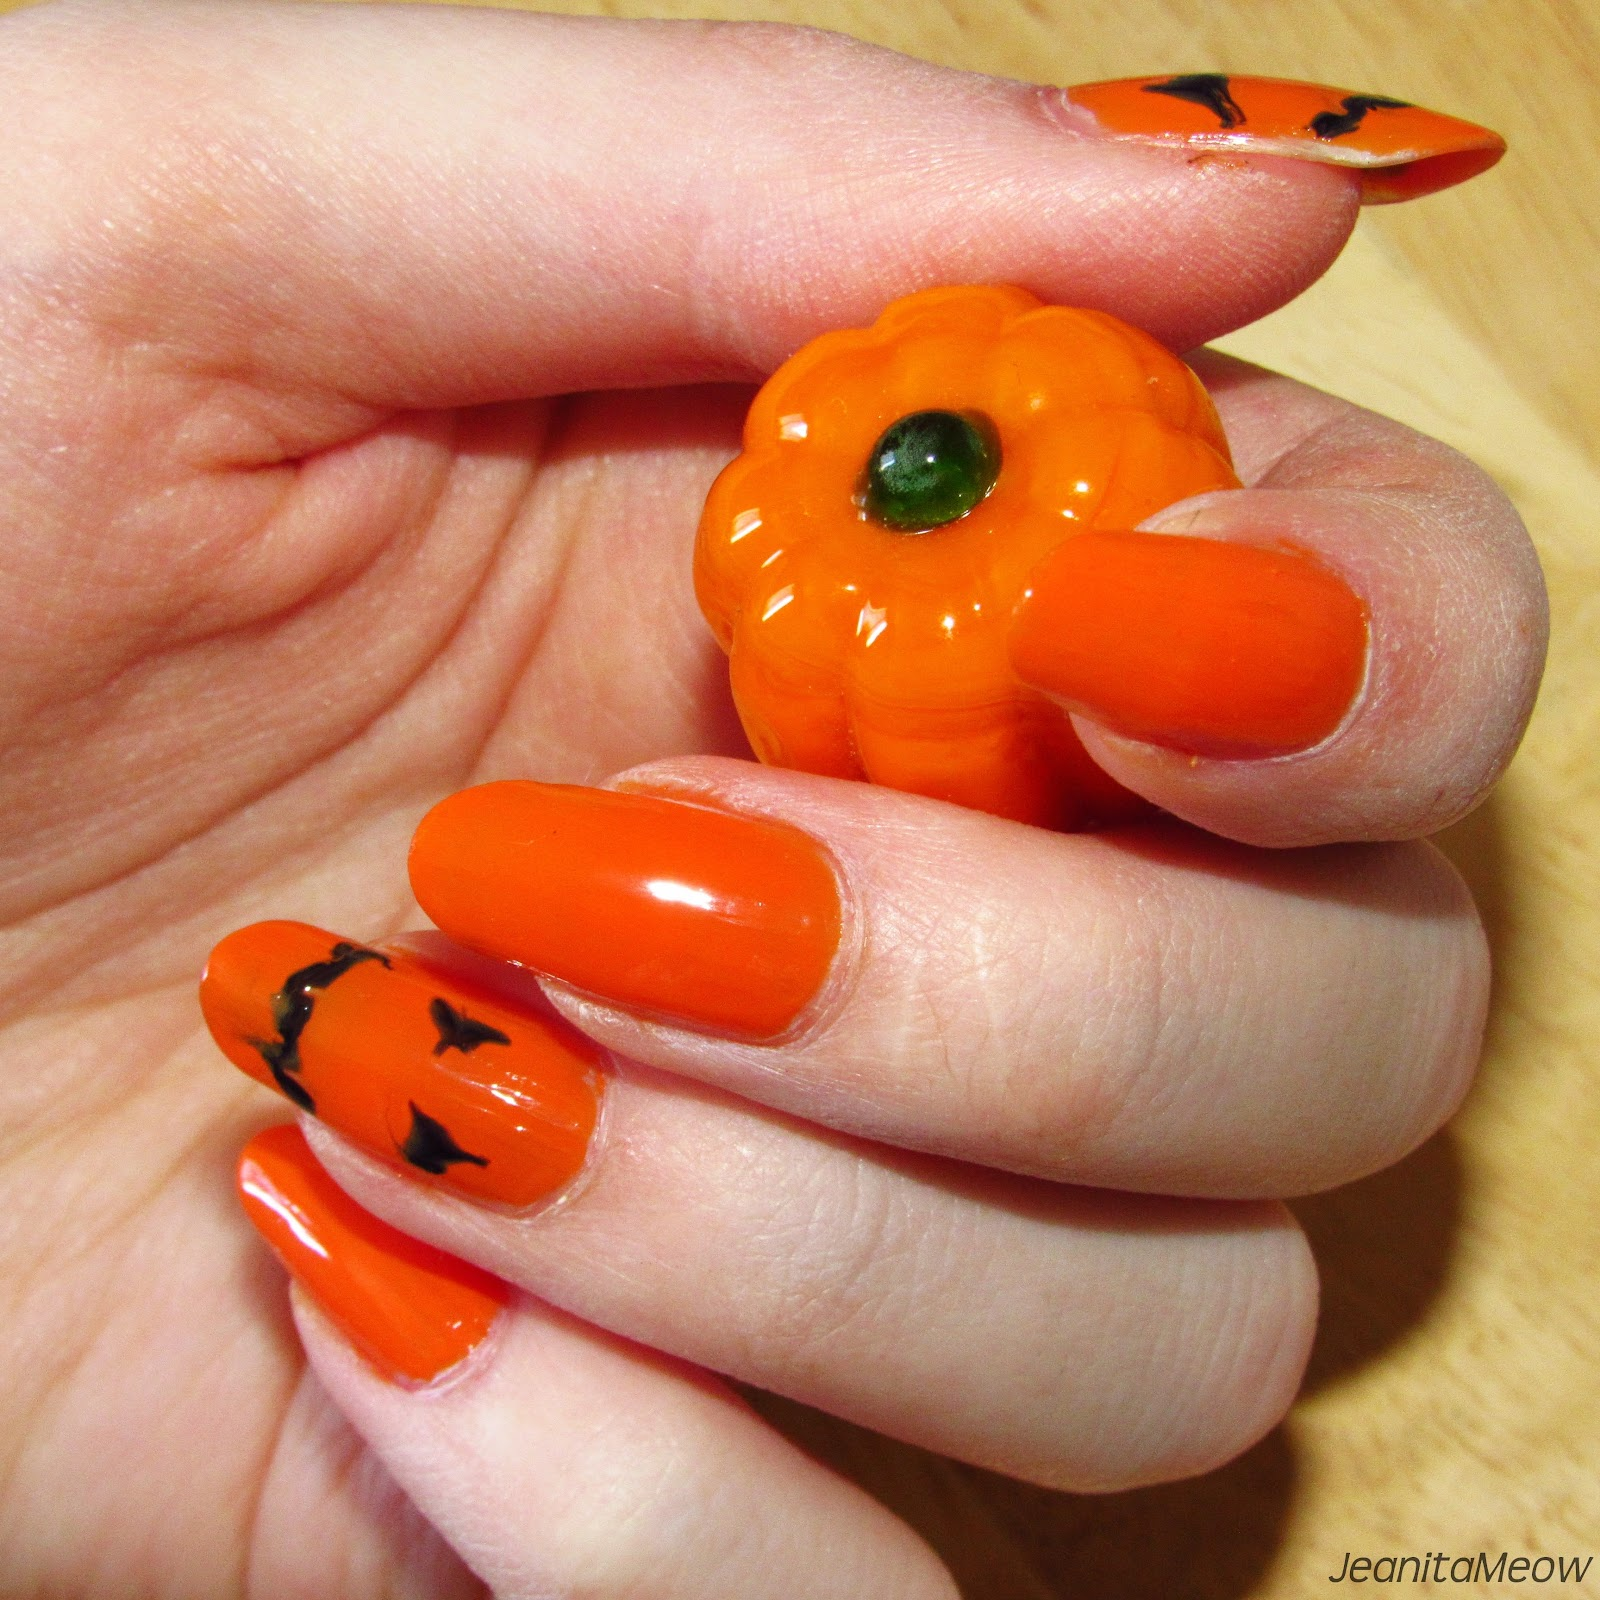 JeanitaMeow | Nails, Beauty, Food & More: Drag Marble Jack-O-Lantern ...